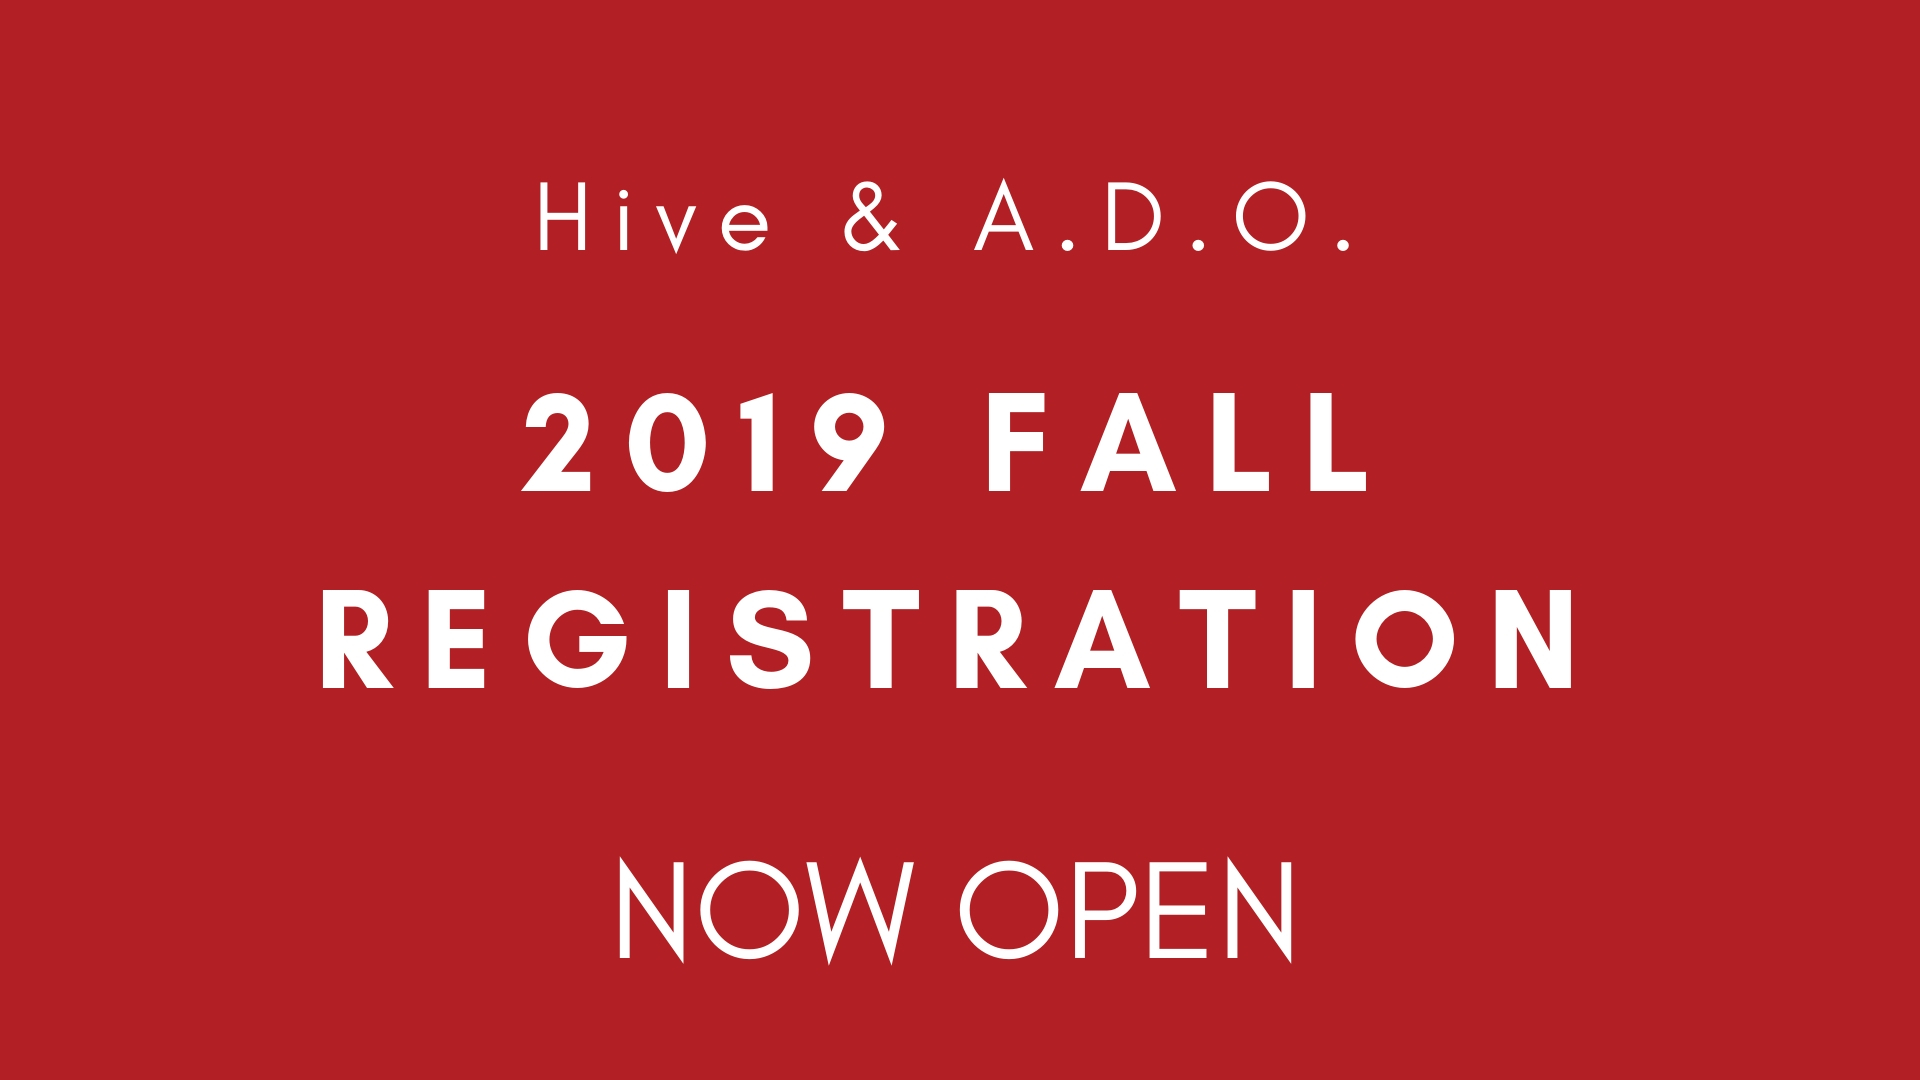 2019 Fall Registration Now Open